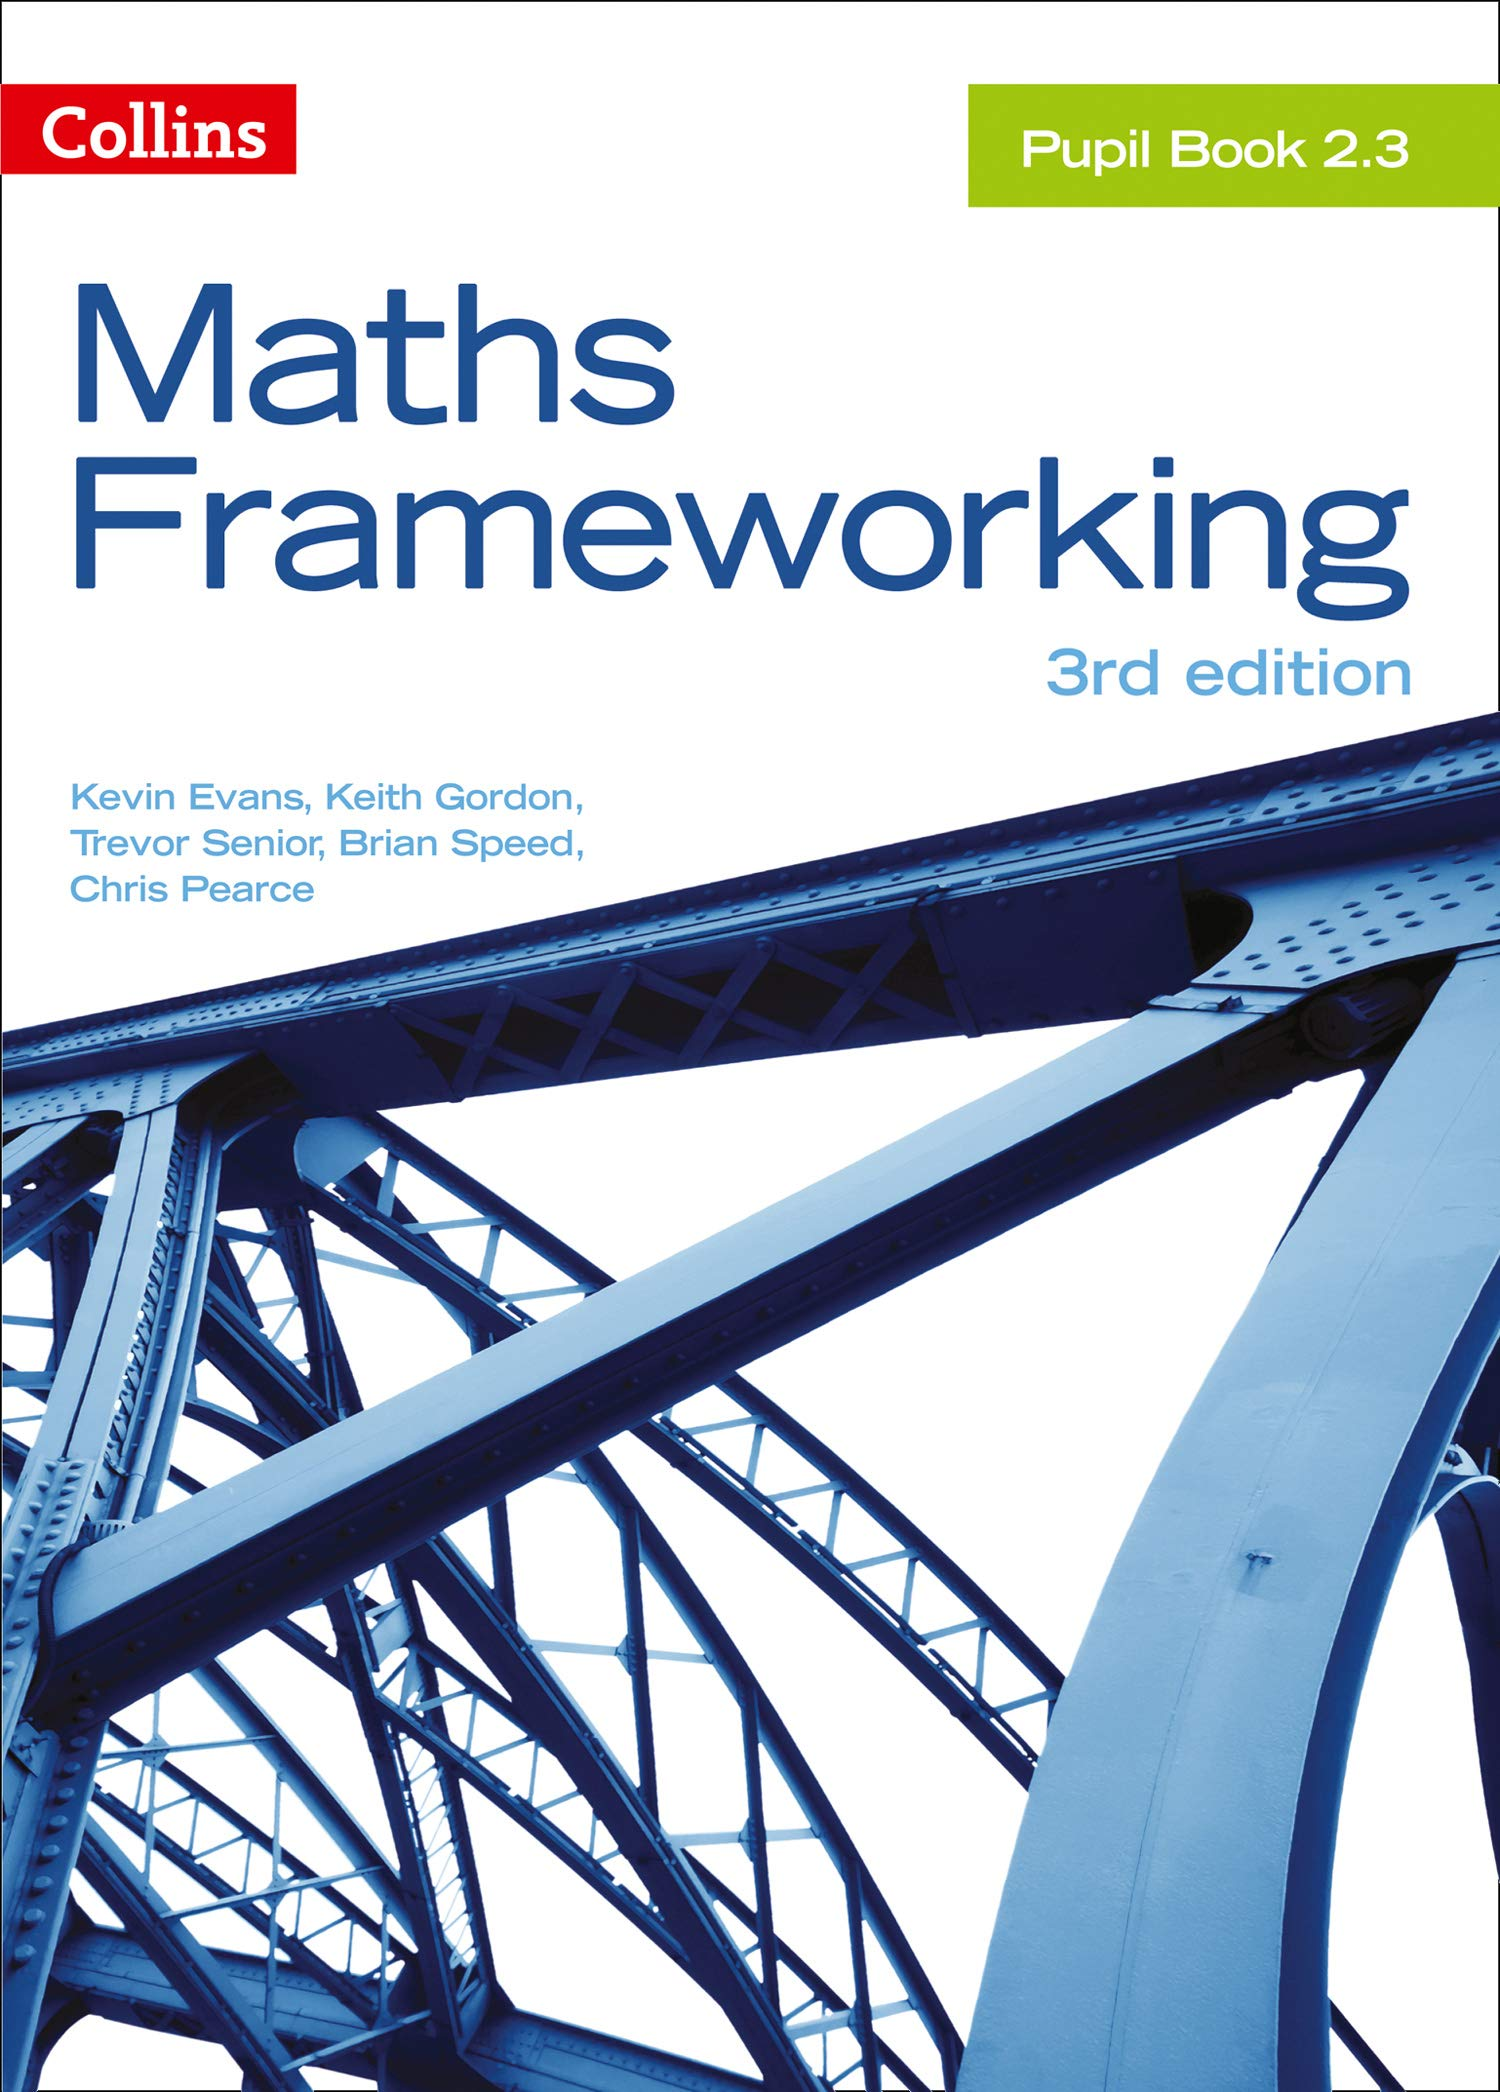 Image OfKS3 Maths Pupil Book 2.3 (Maths Frameworking)